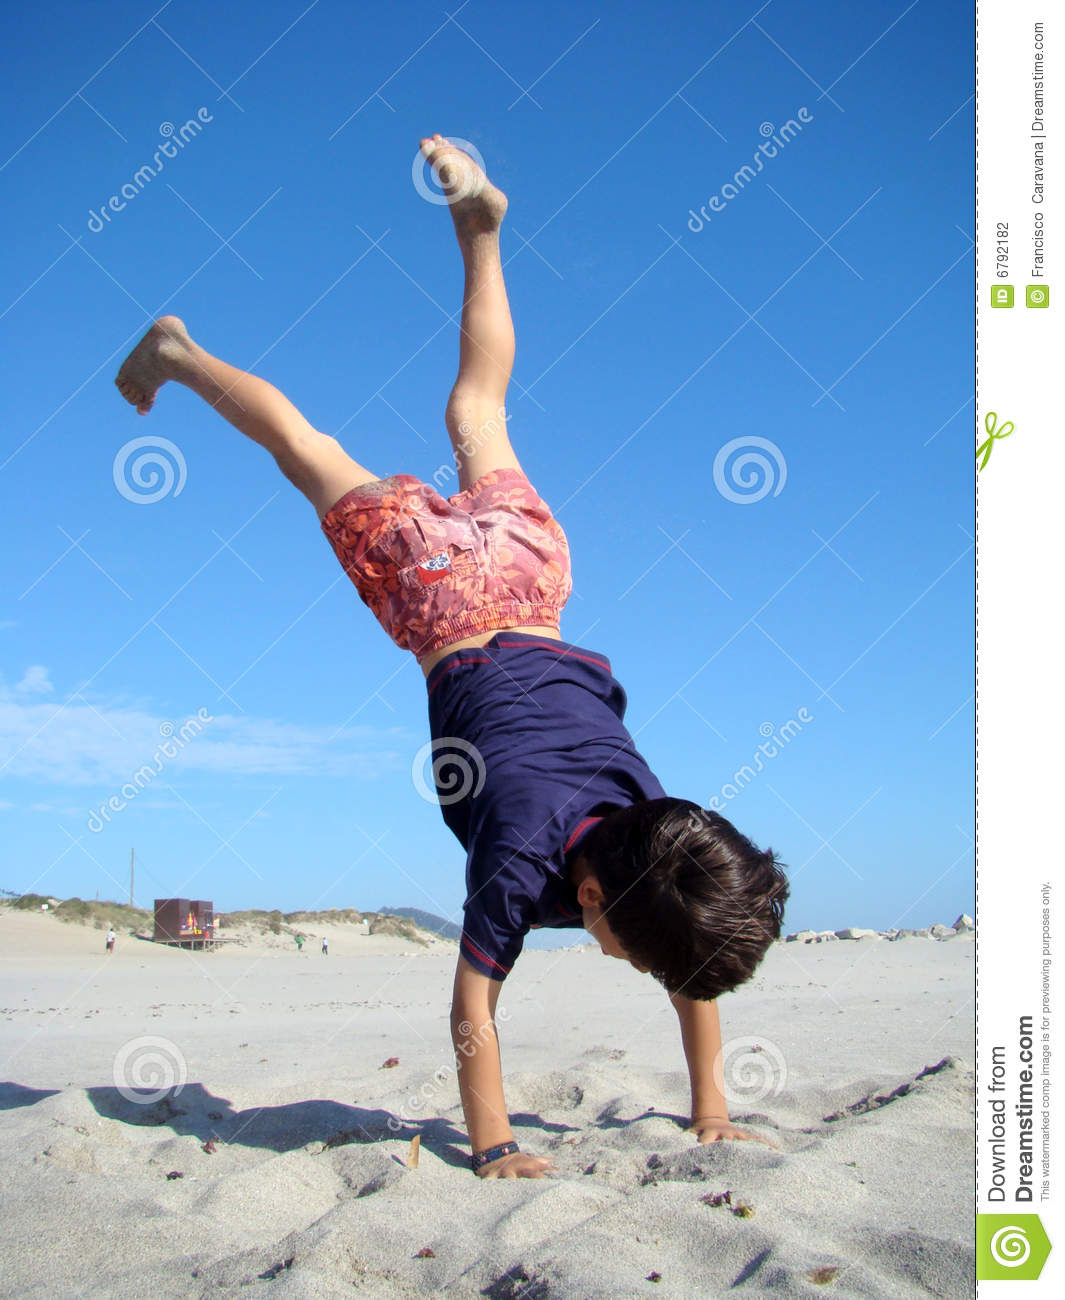 Child Upside Down Stock Photography - Image: 6792182